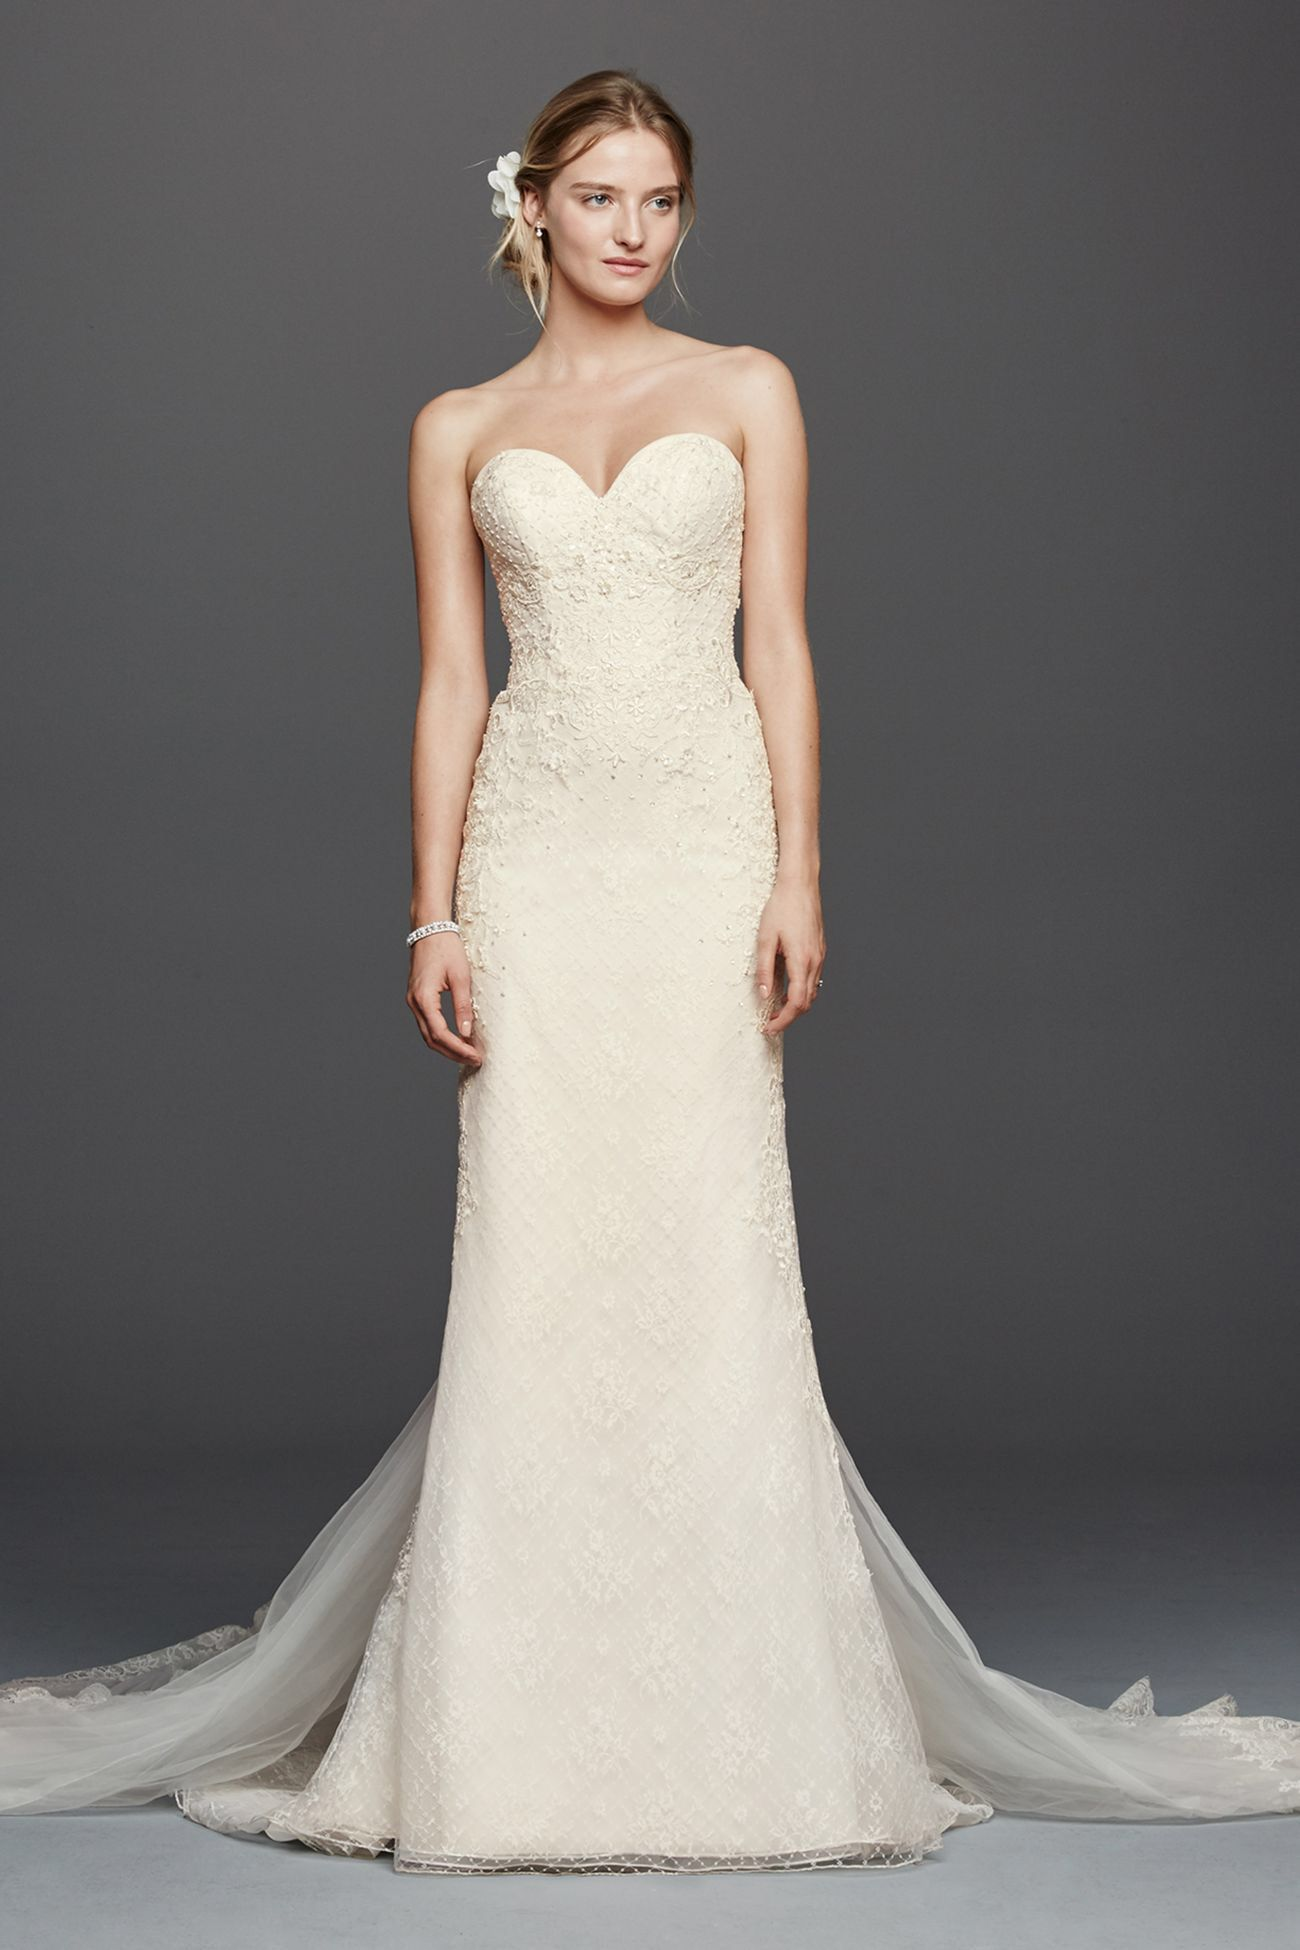 My New Favorite! Gown